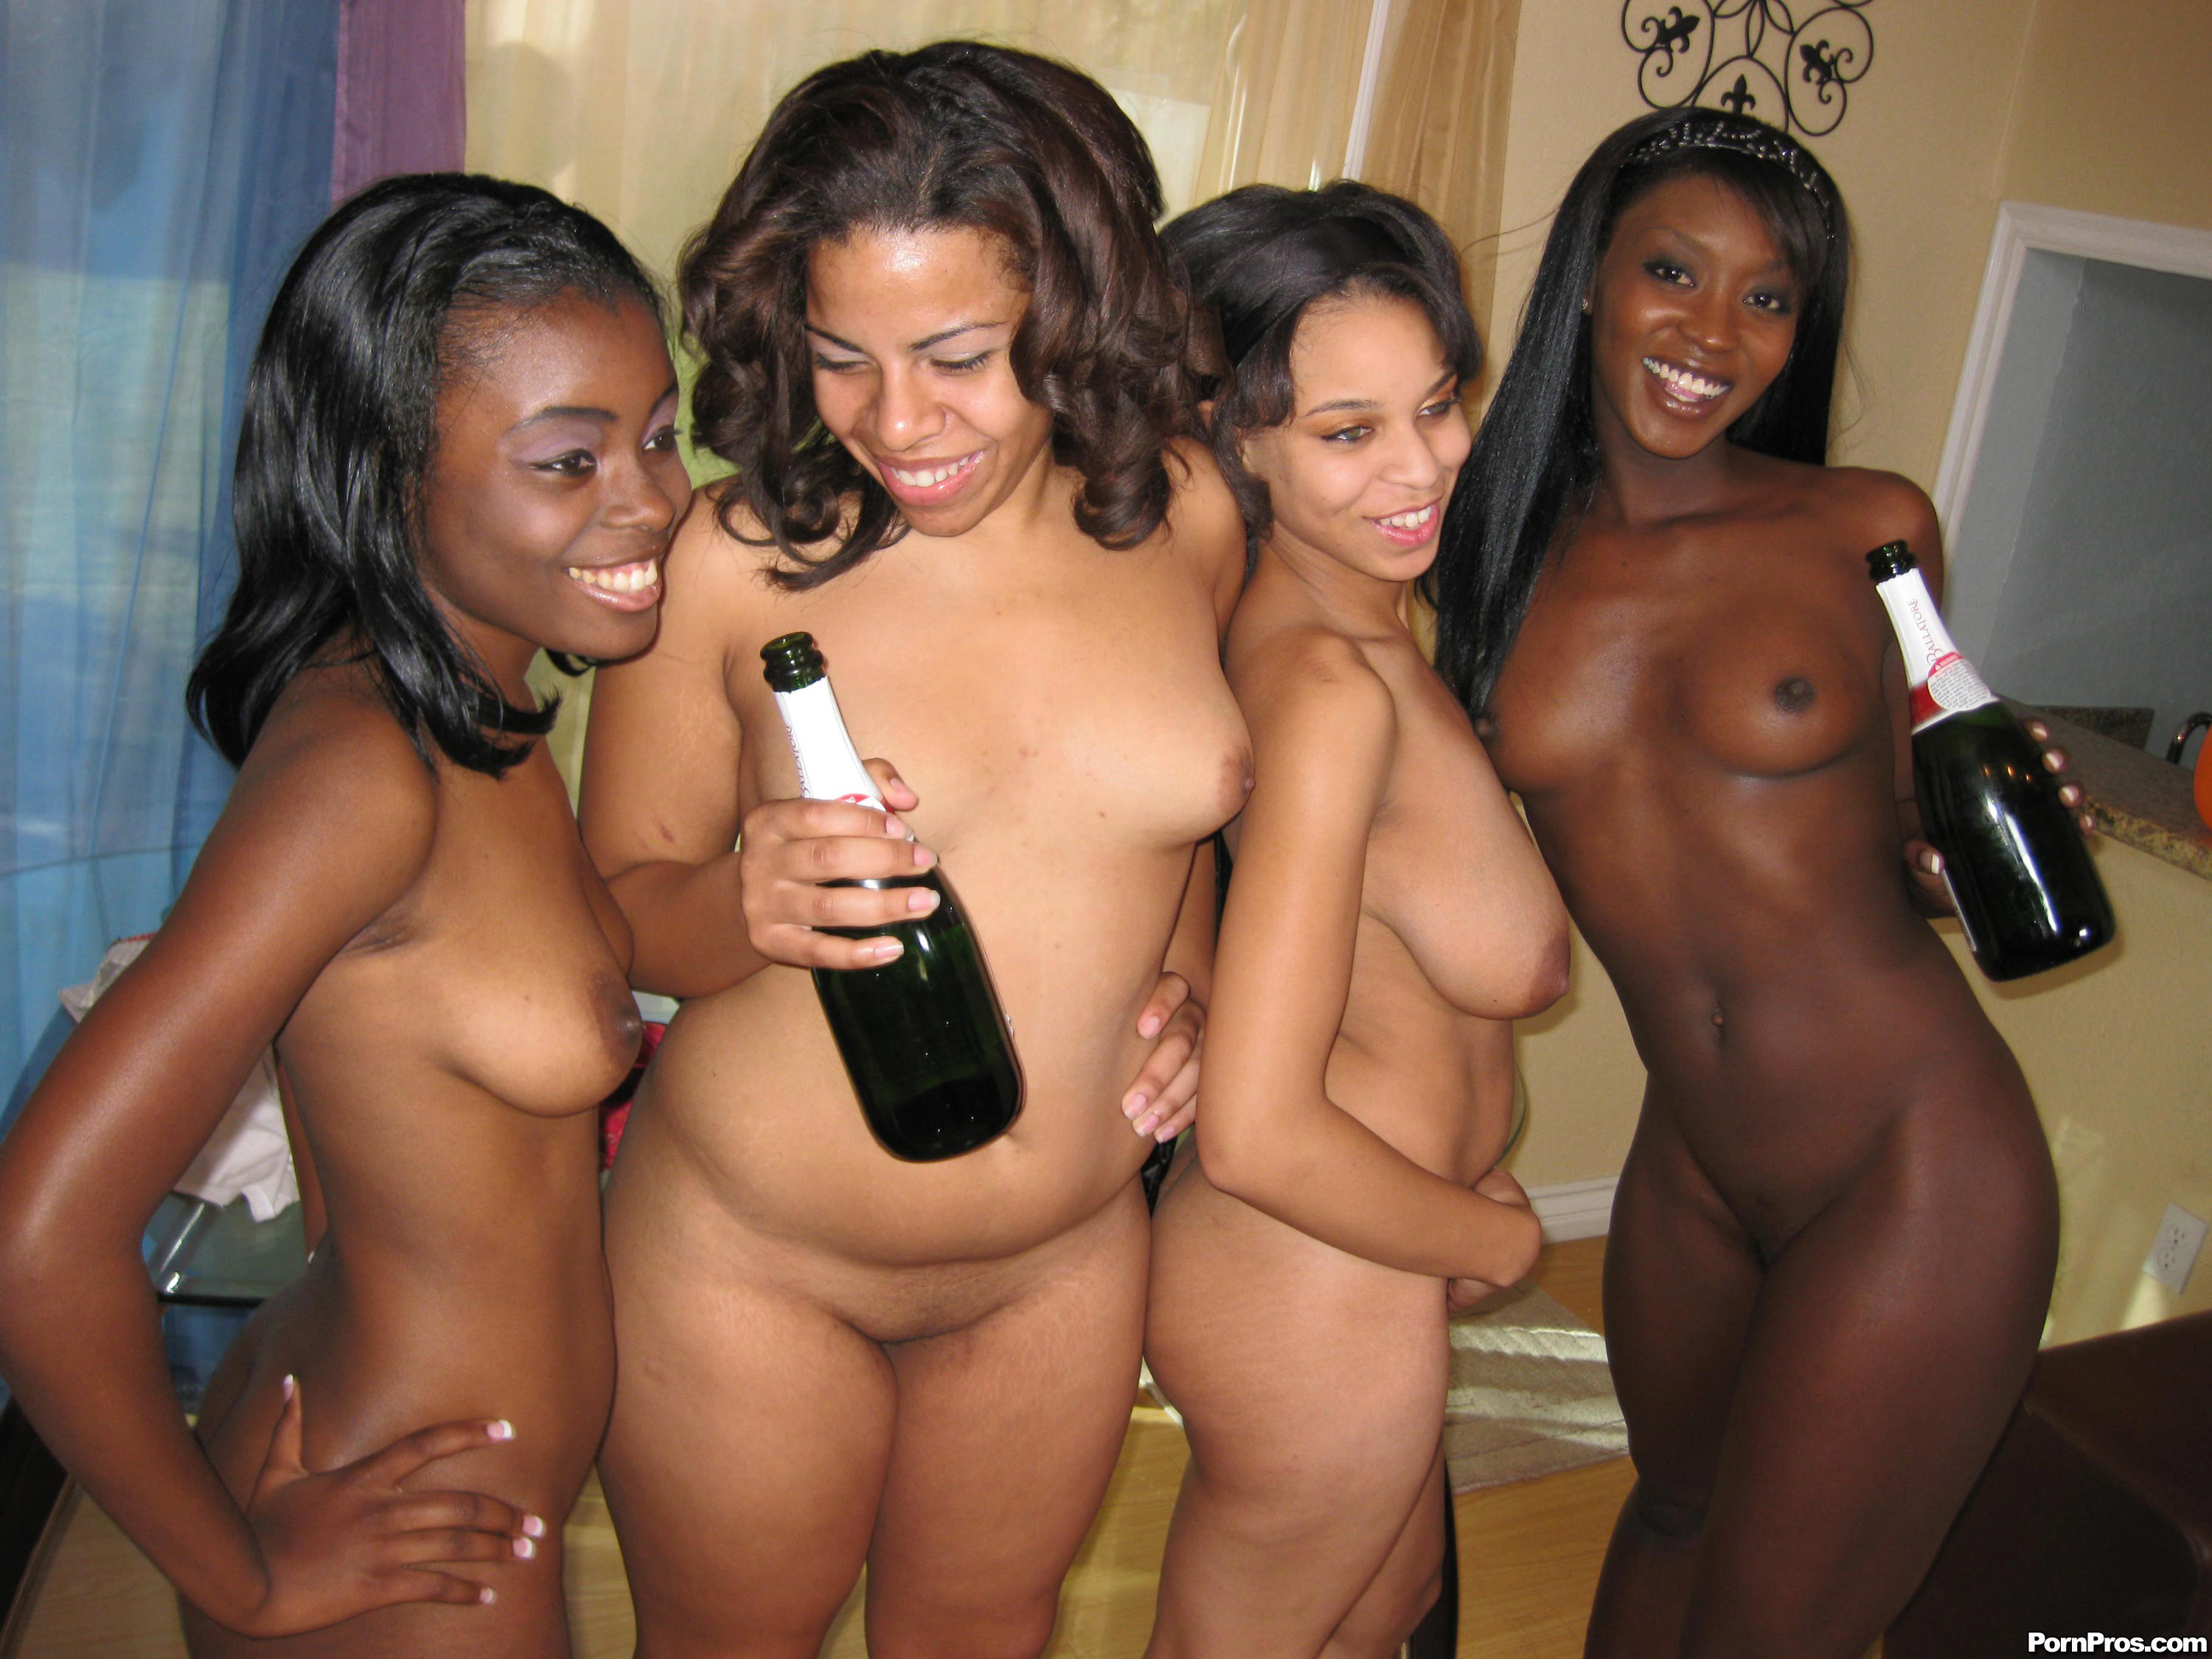 Real horny party nude